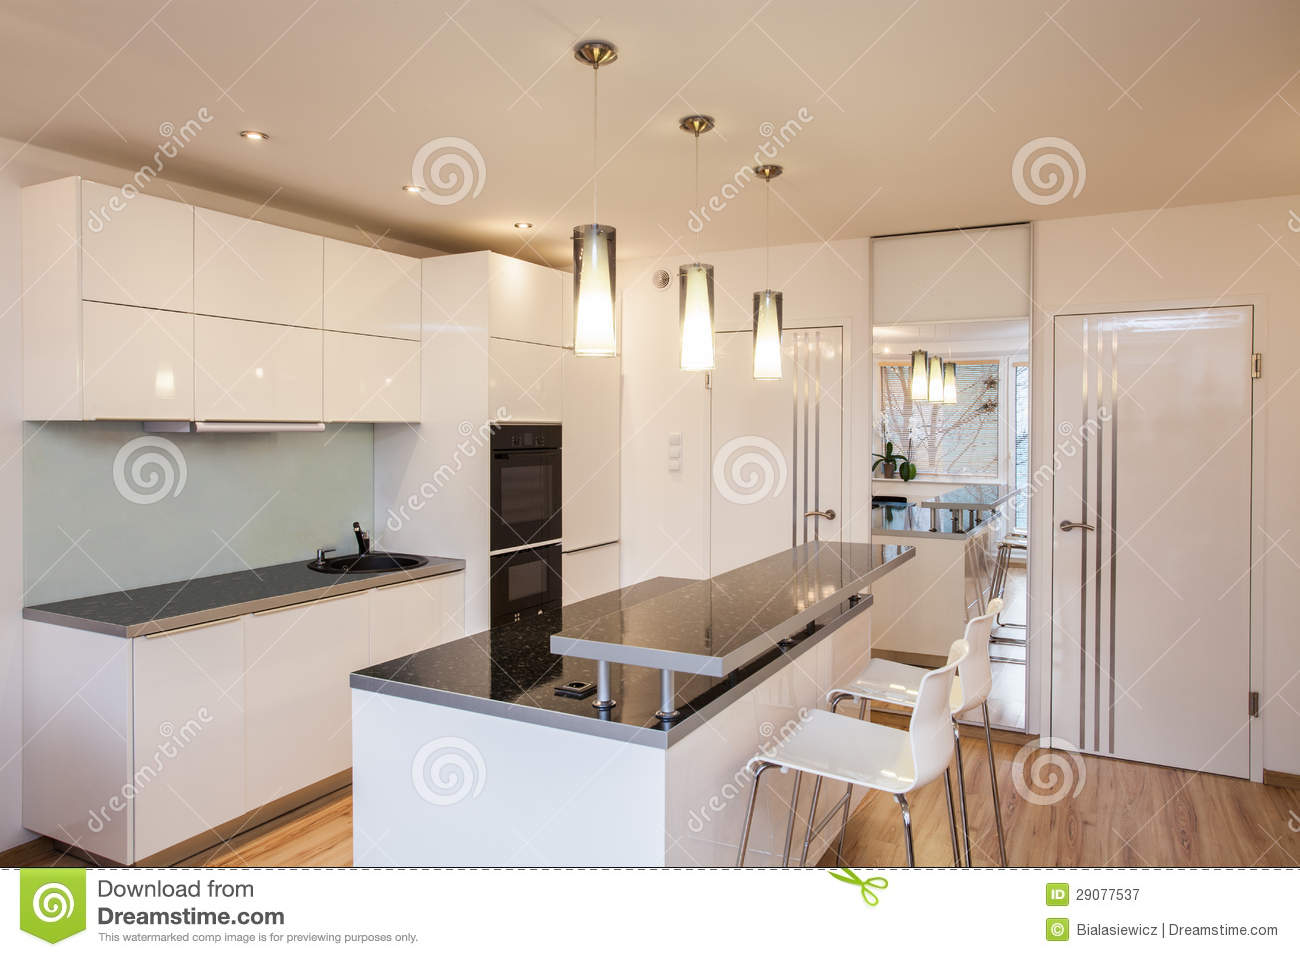 Stylish Flat Kitchen Interior Royalty Free Stock